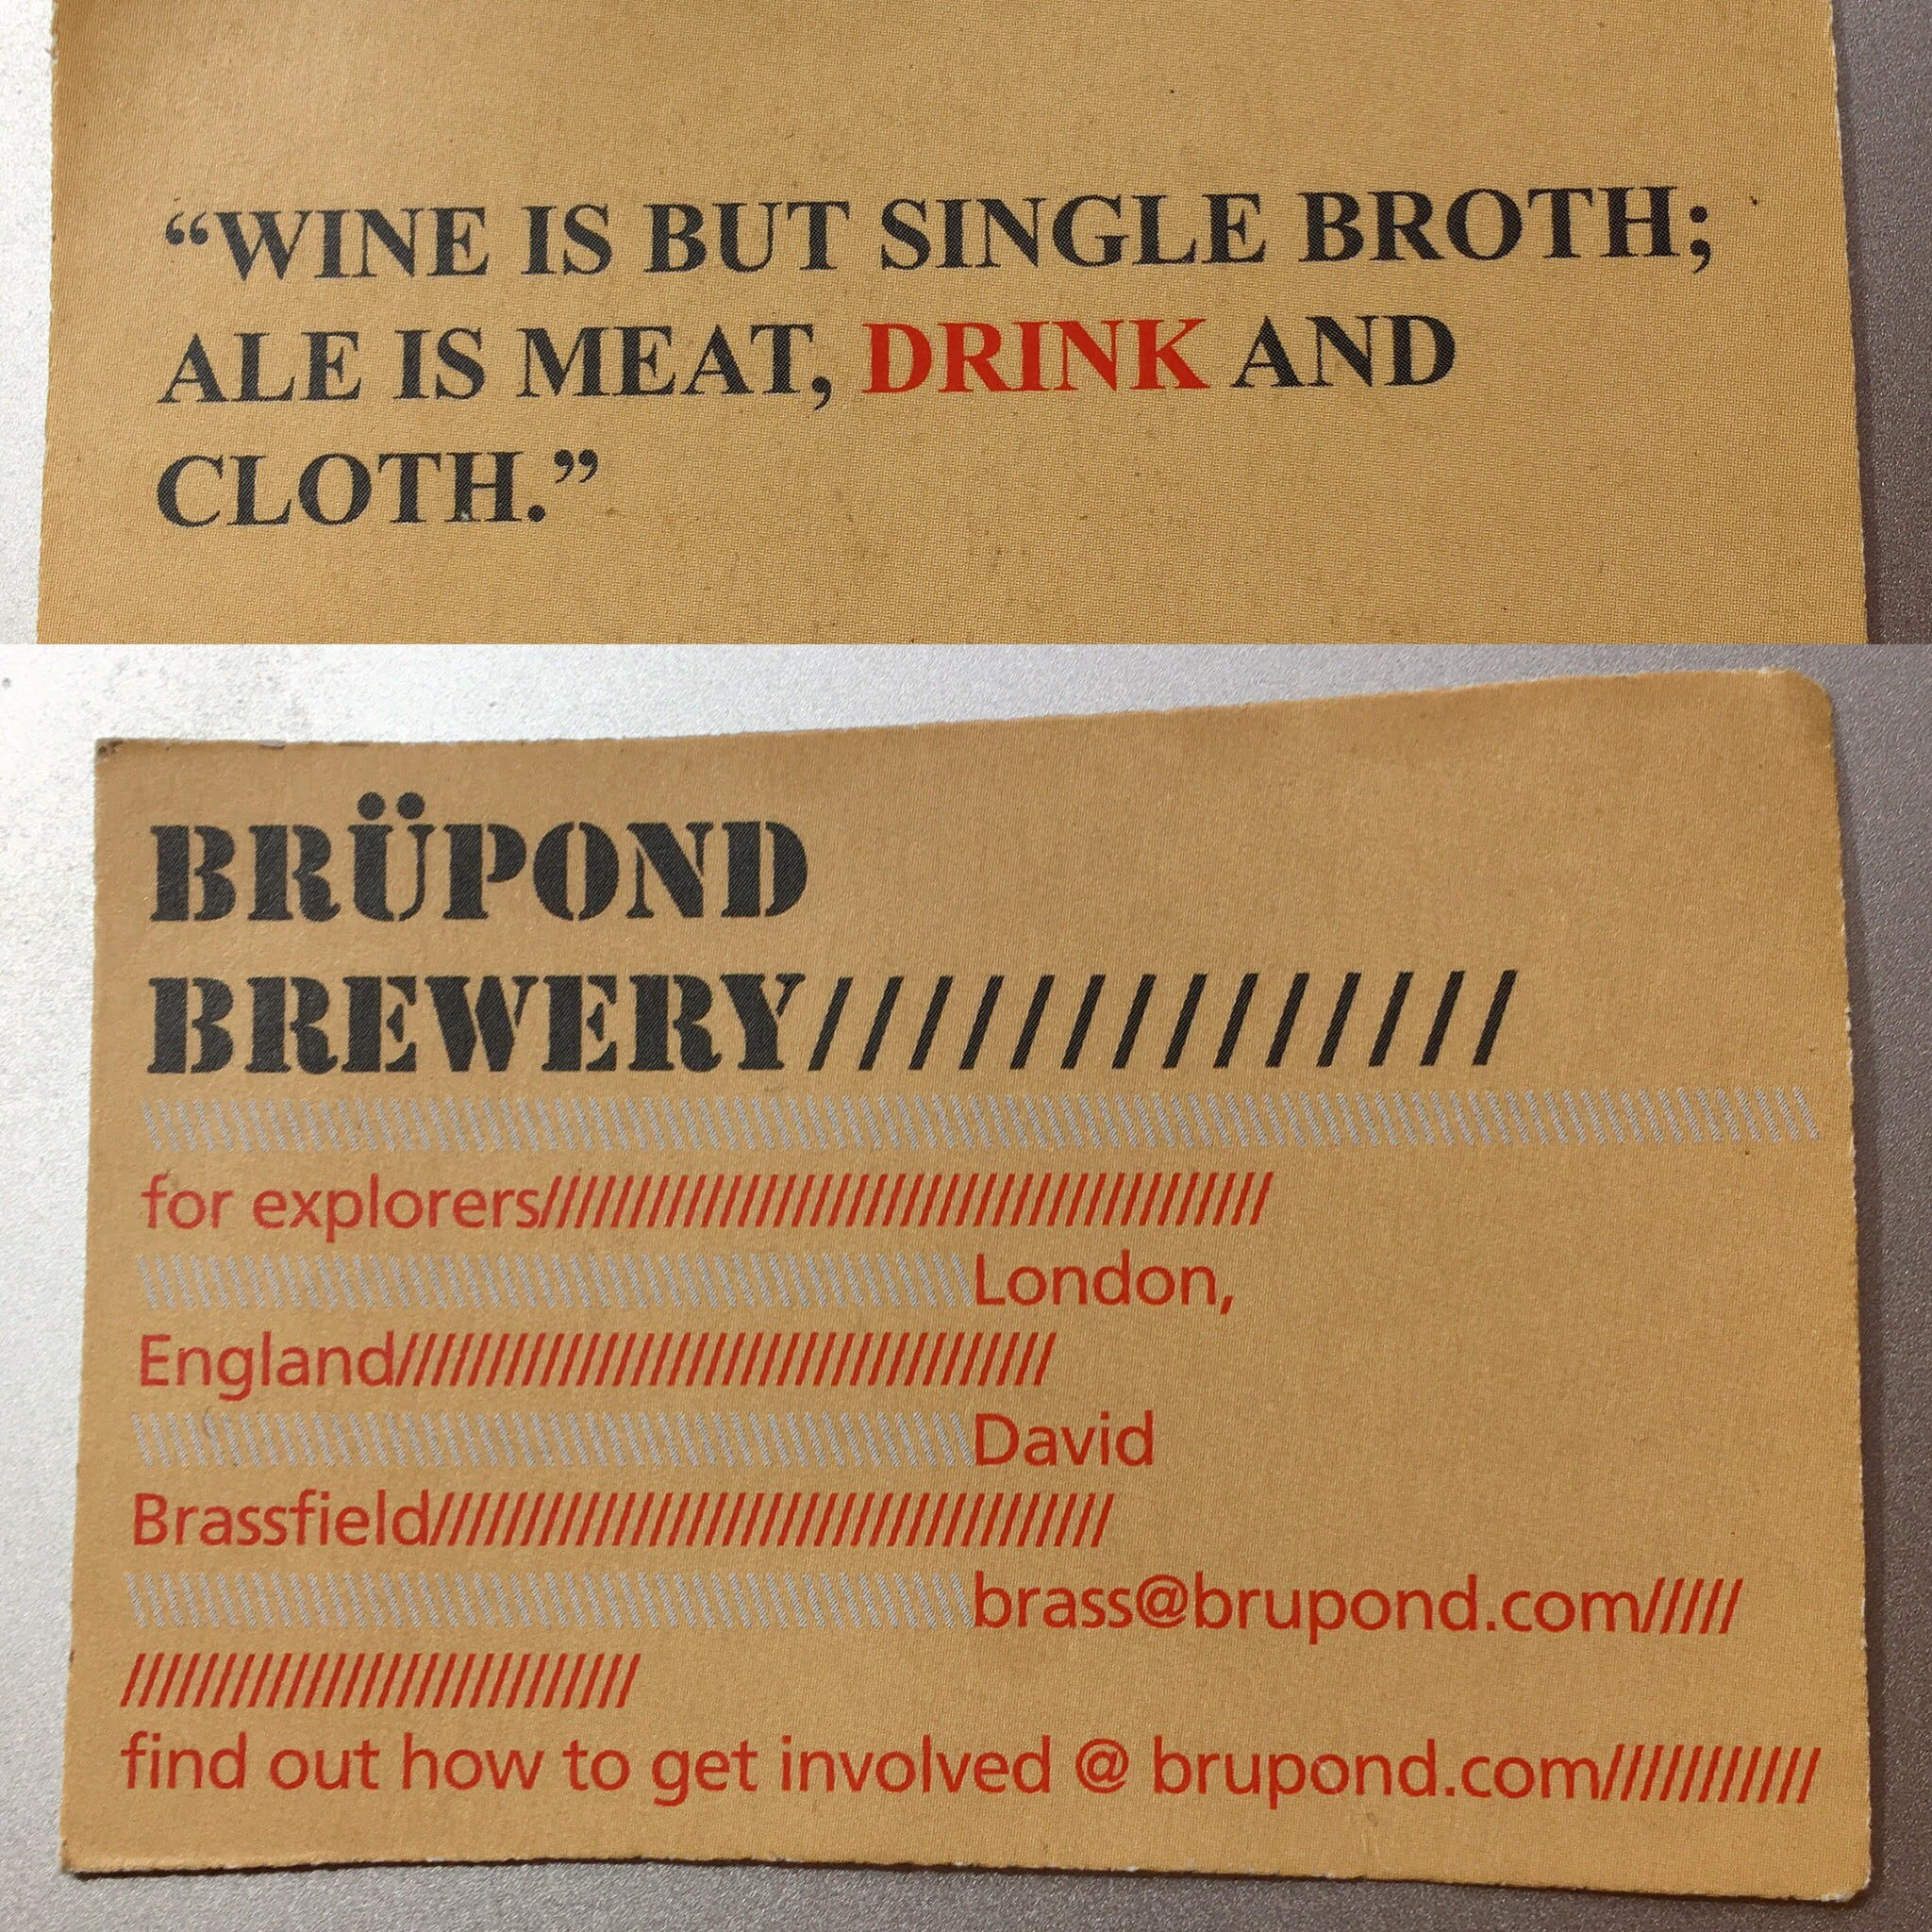 Dravid Brassfield's card, front and back, from the summer of 2012